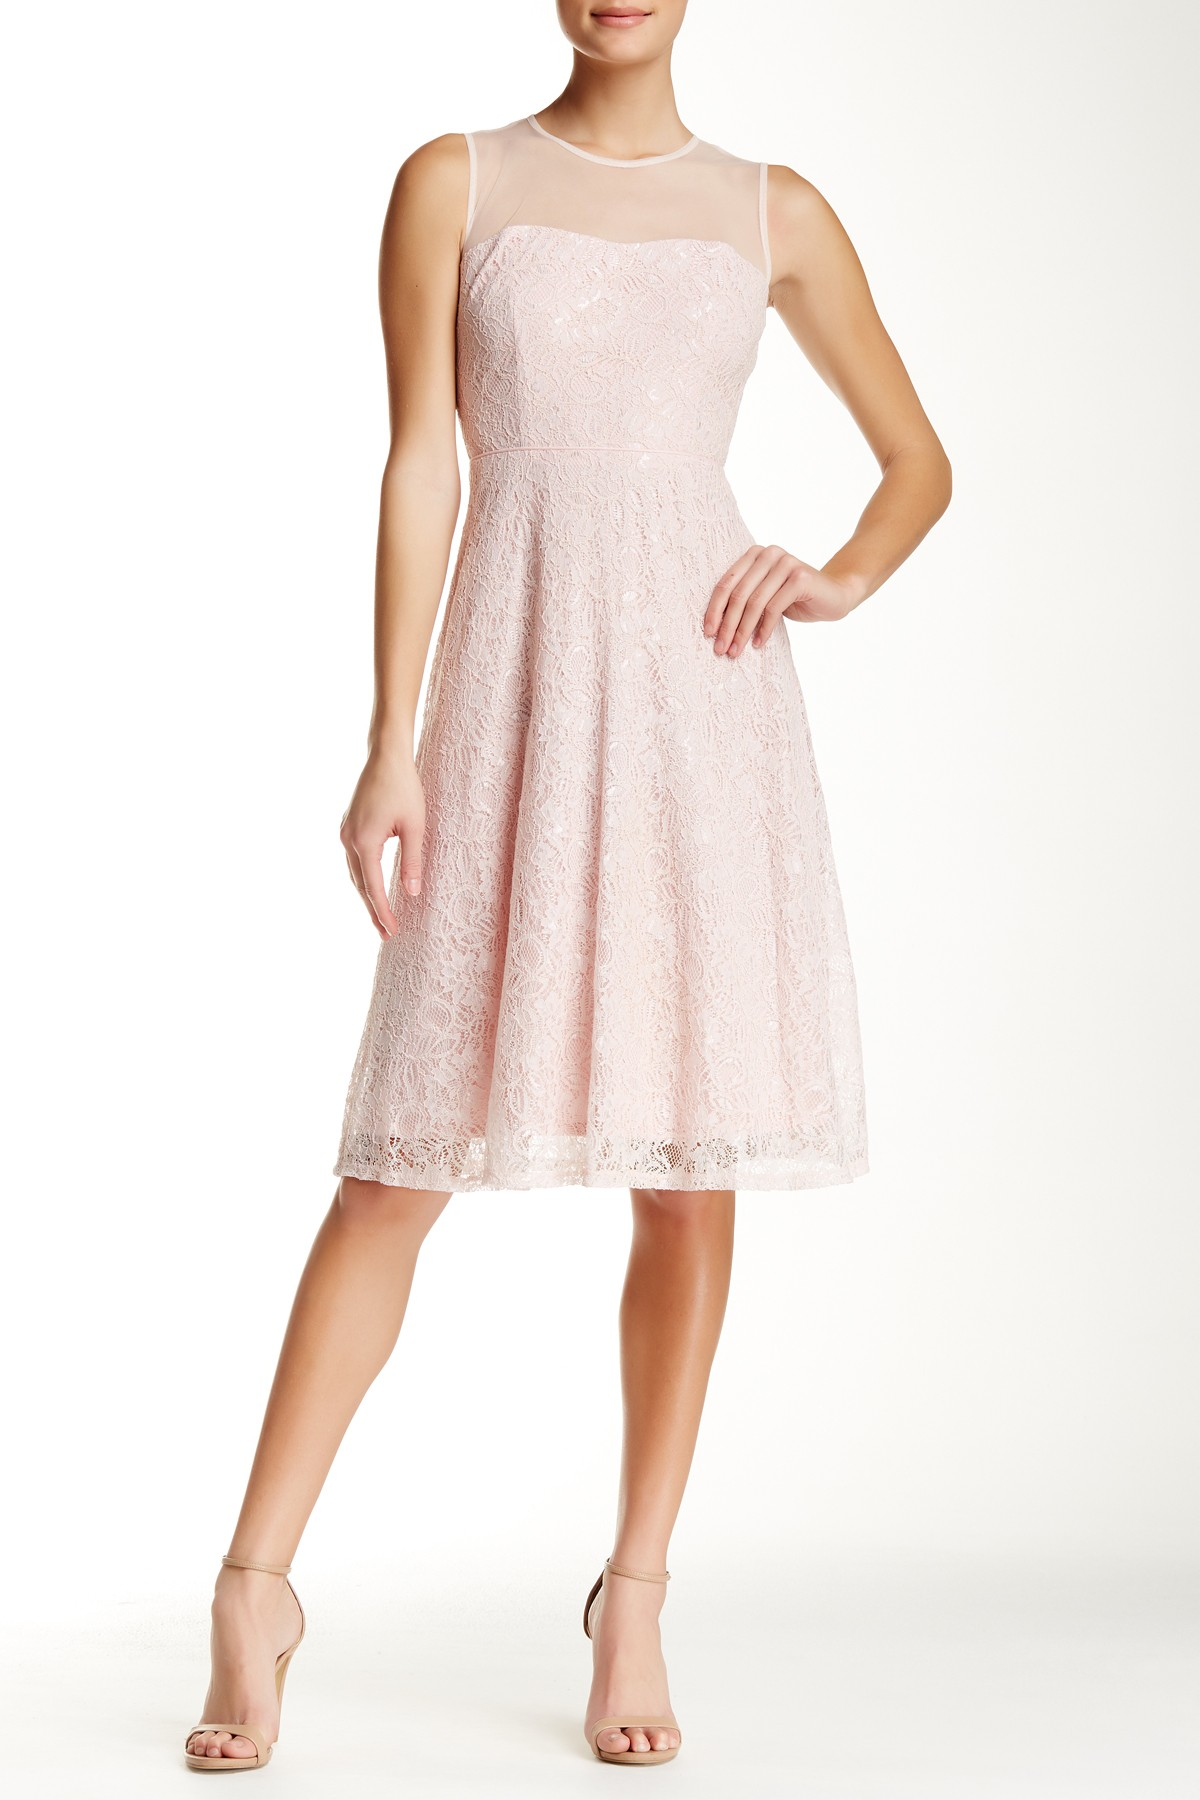 21c072ce74 Lyst - Maggy London Sleeveless Illusion Yoke Midi Flare Dress in Pink